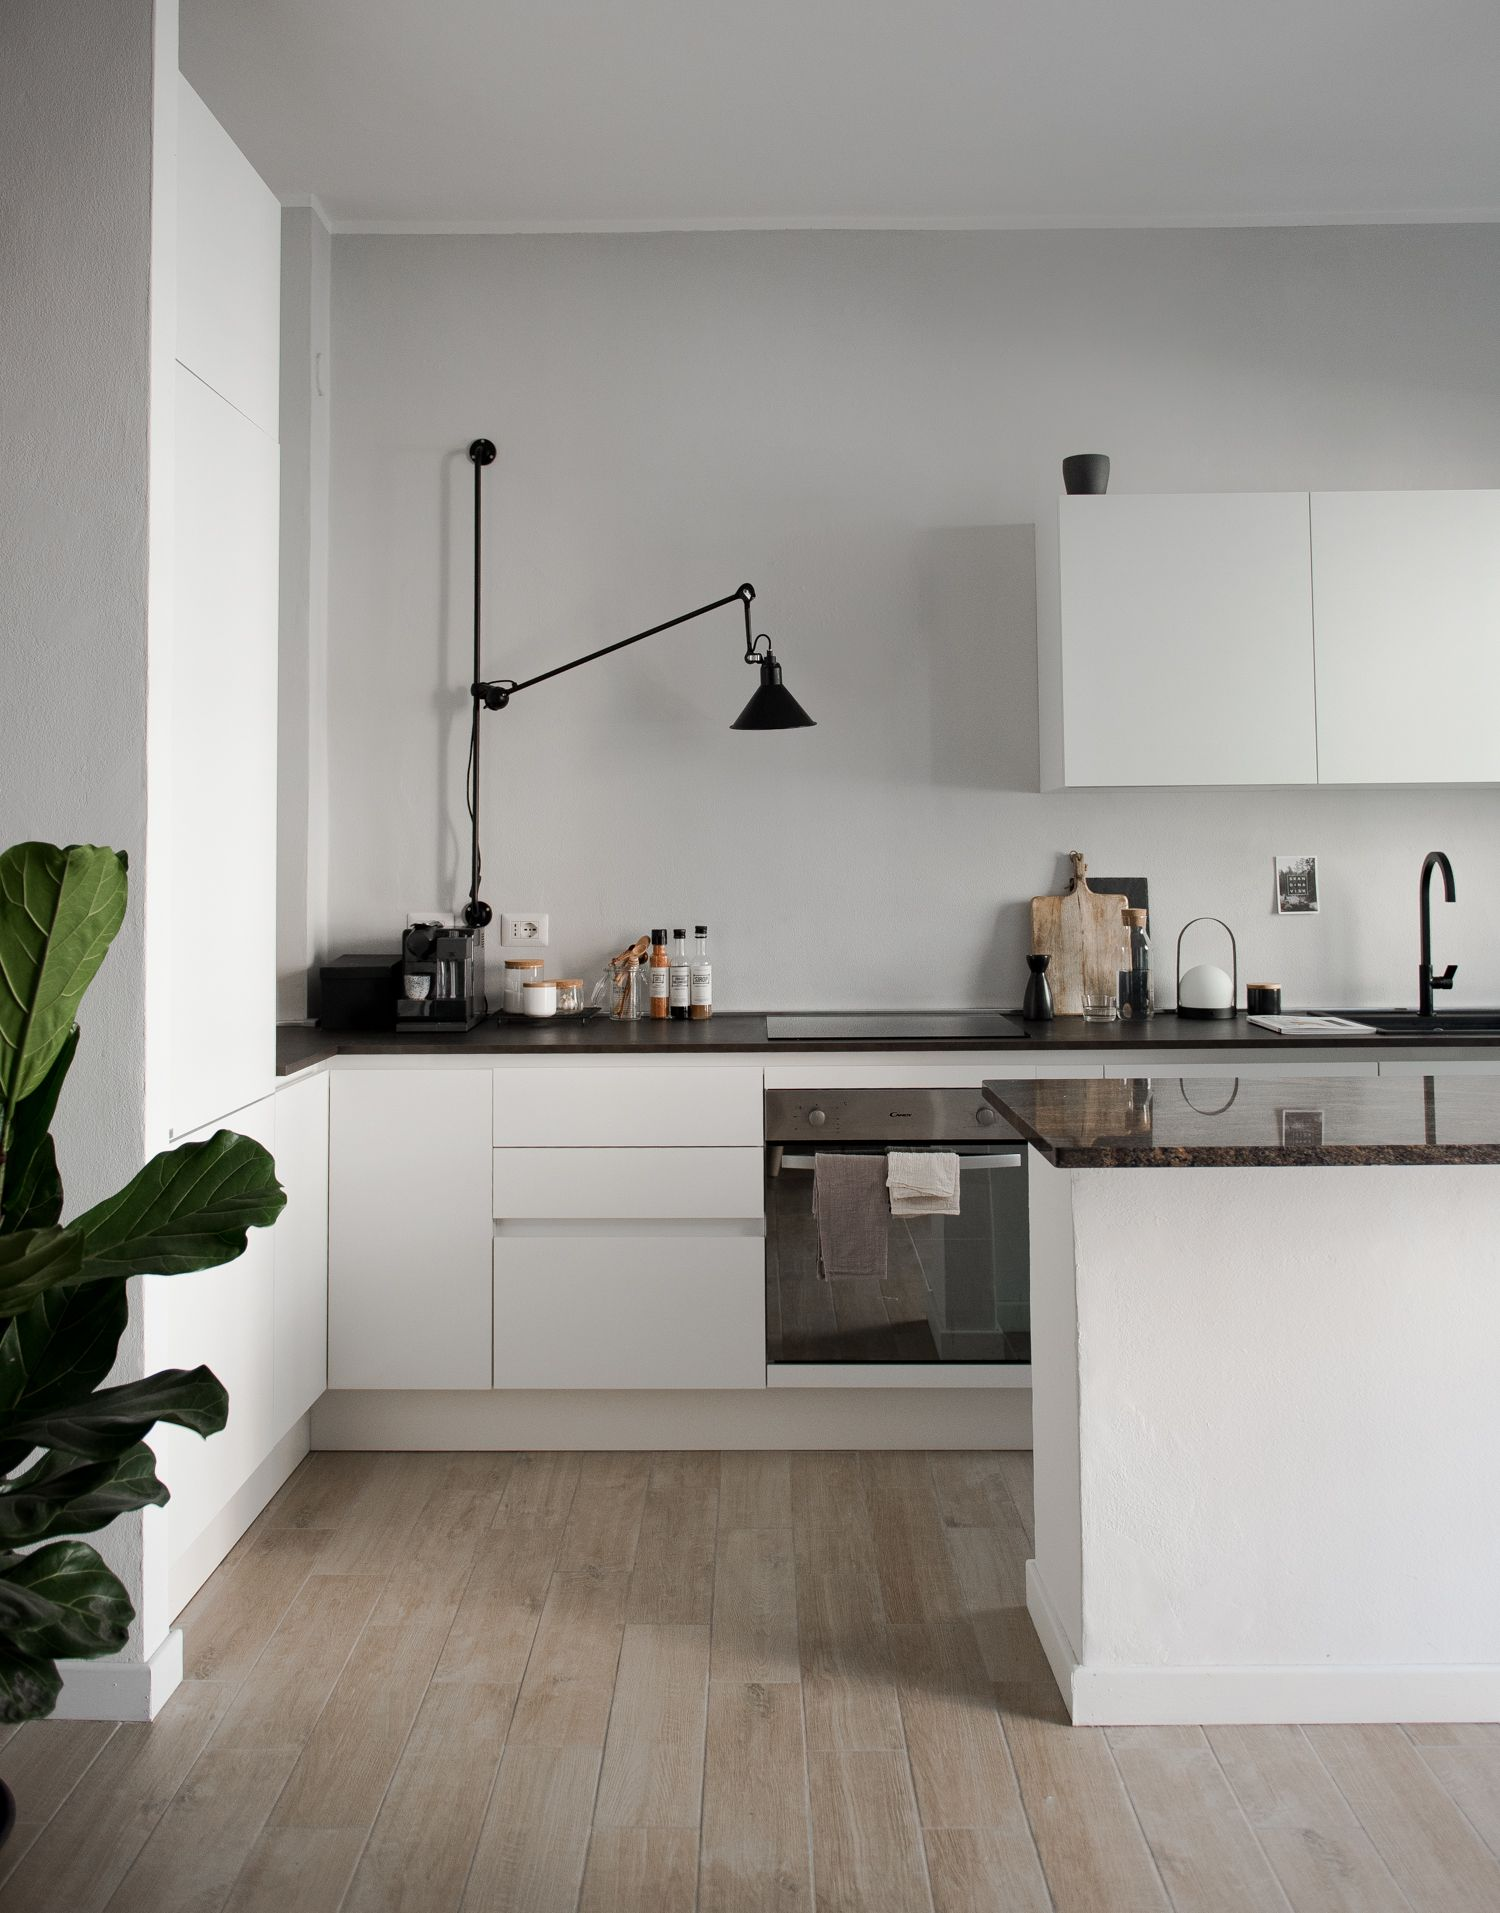 These Refreshing Minimalist Apartment Ideas Will Finally Get You to Declutter